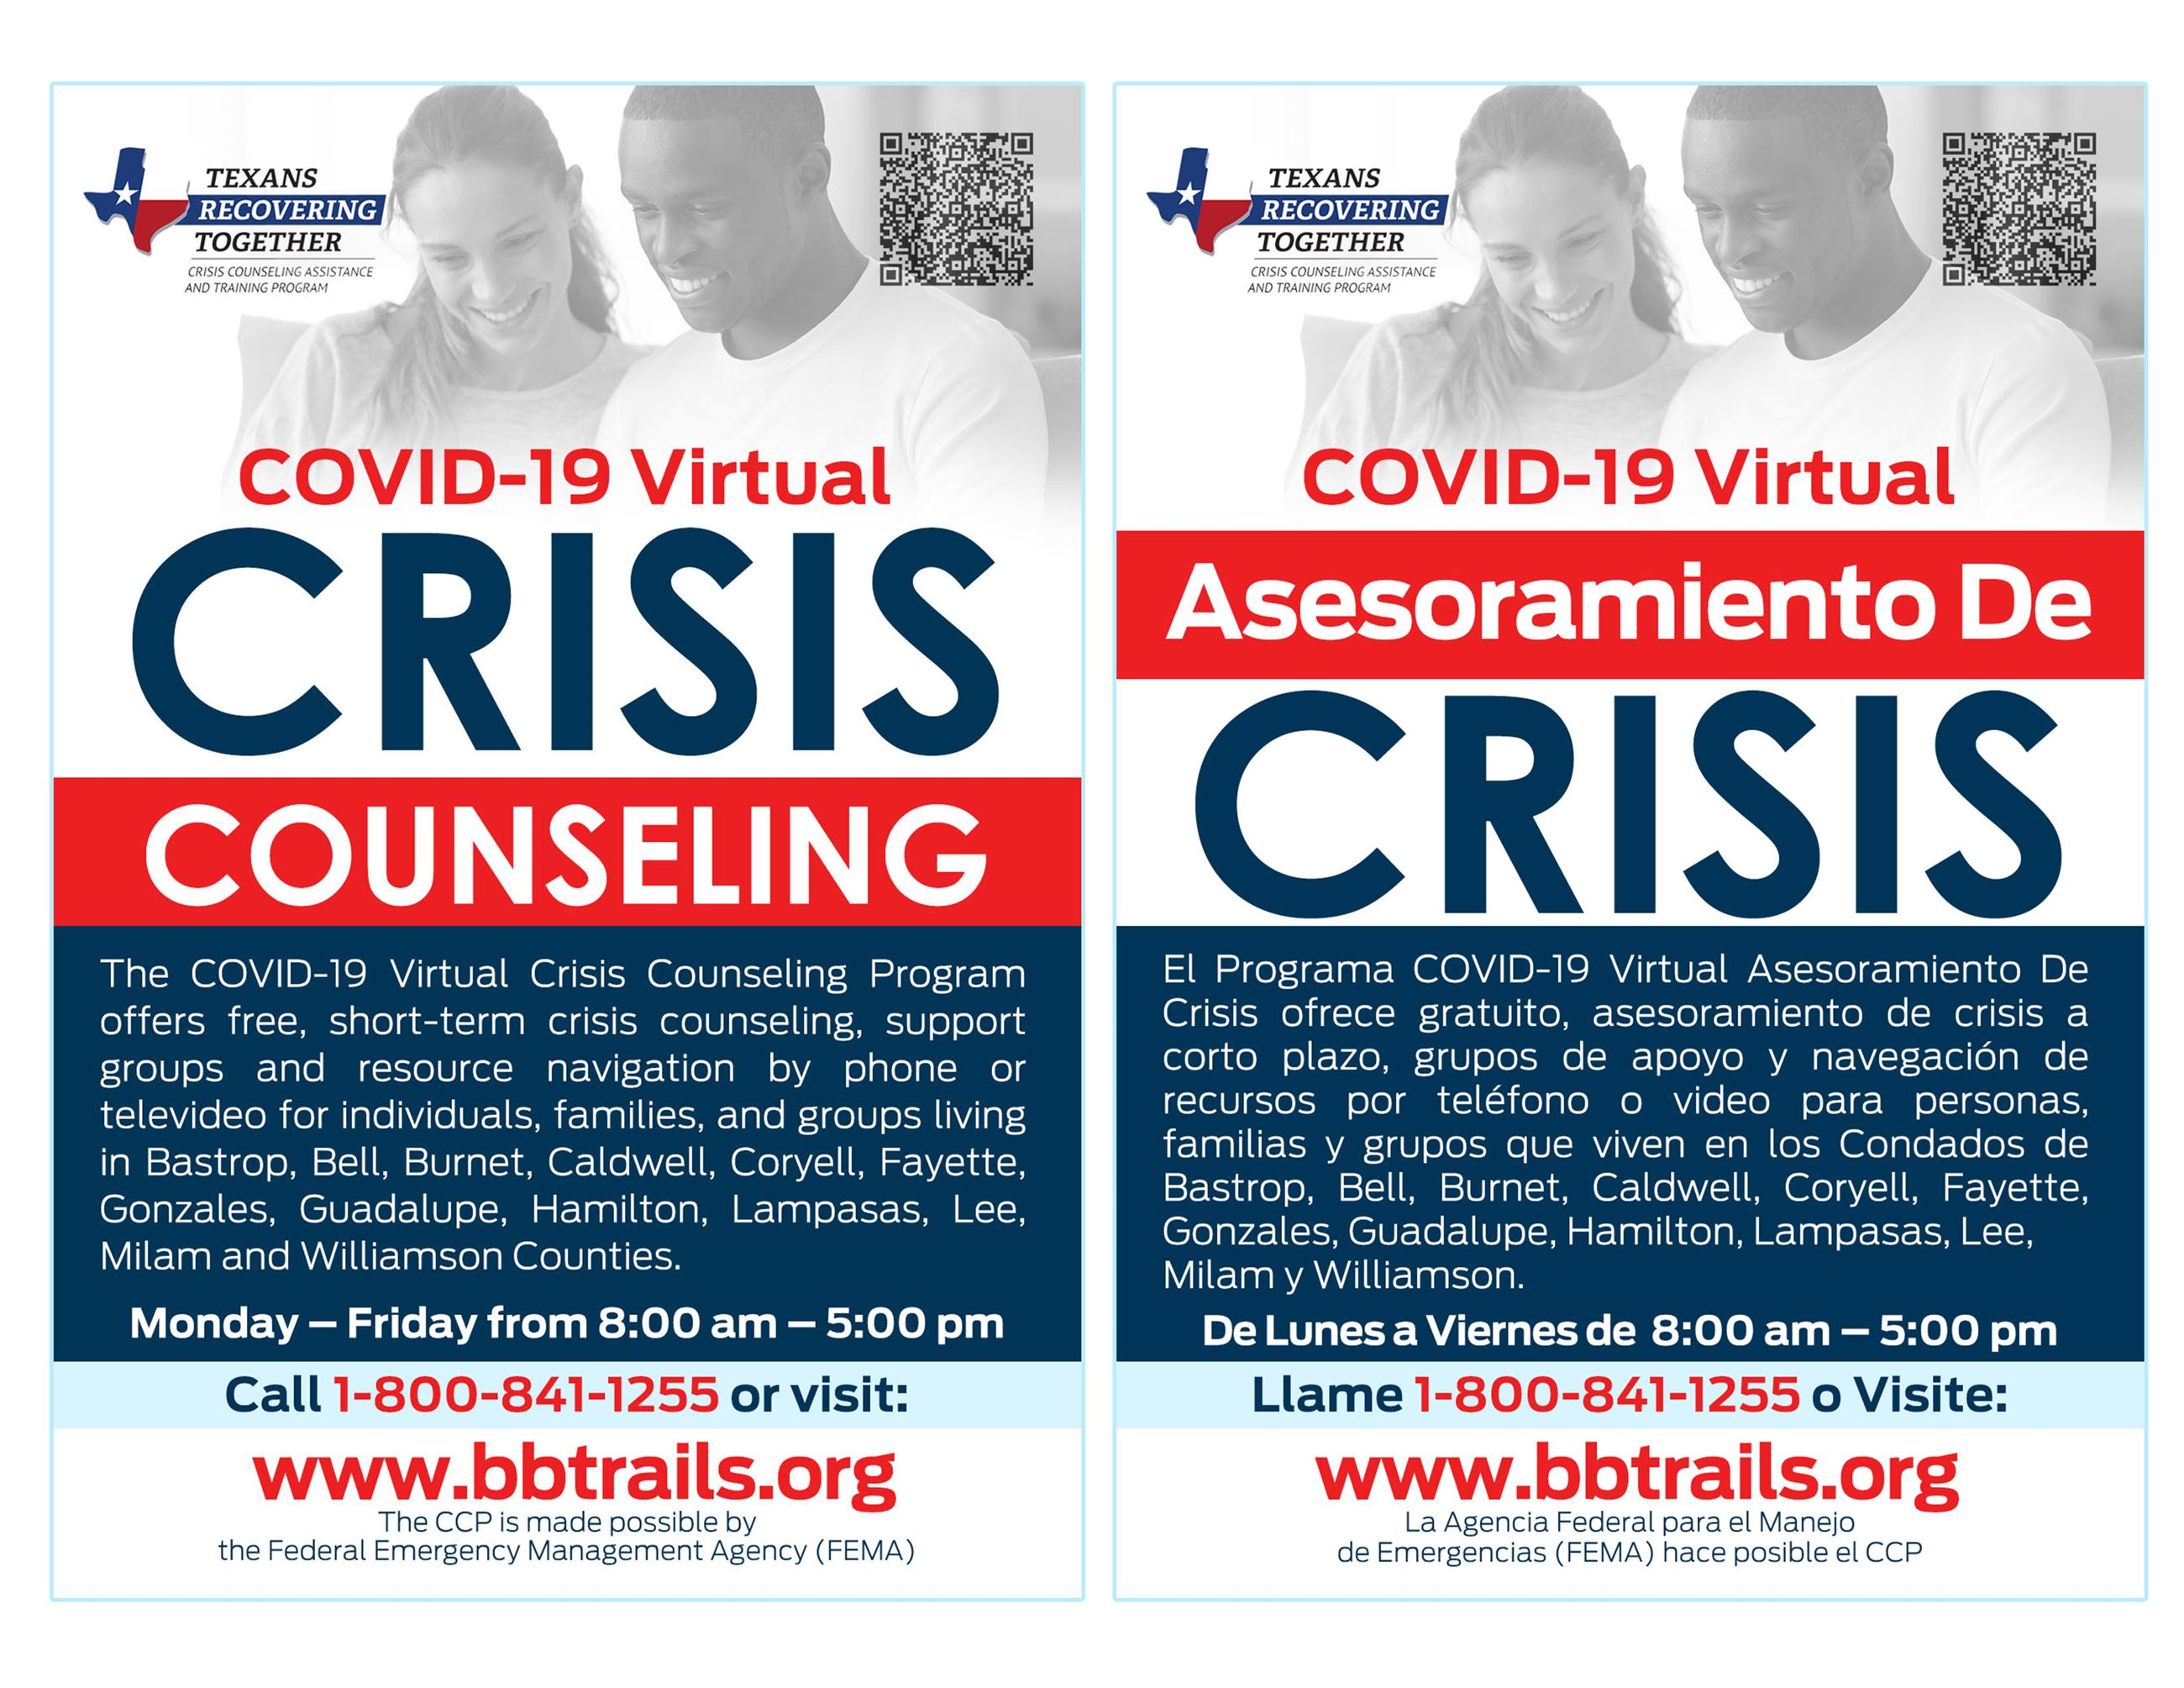 Bluebonnet Trails crisis counseling flyer in English and Spanish